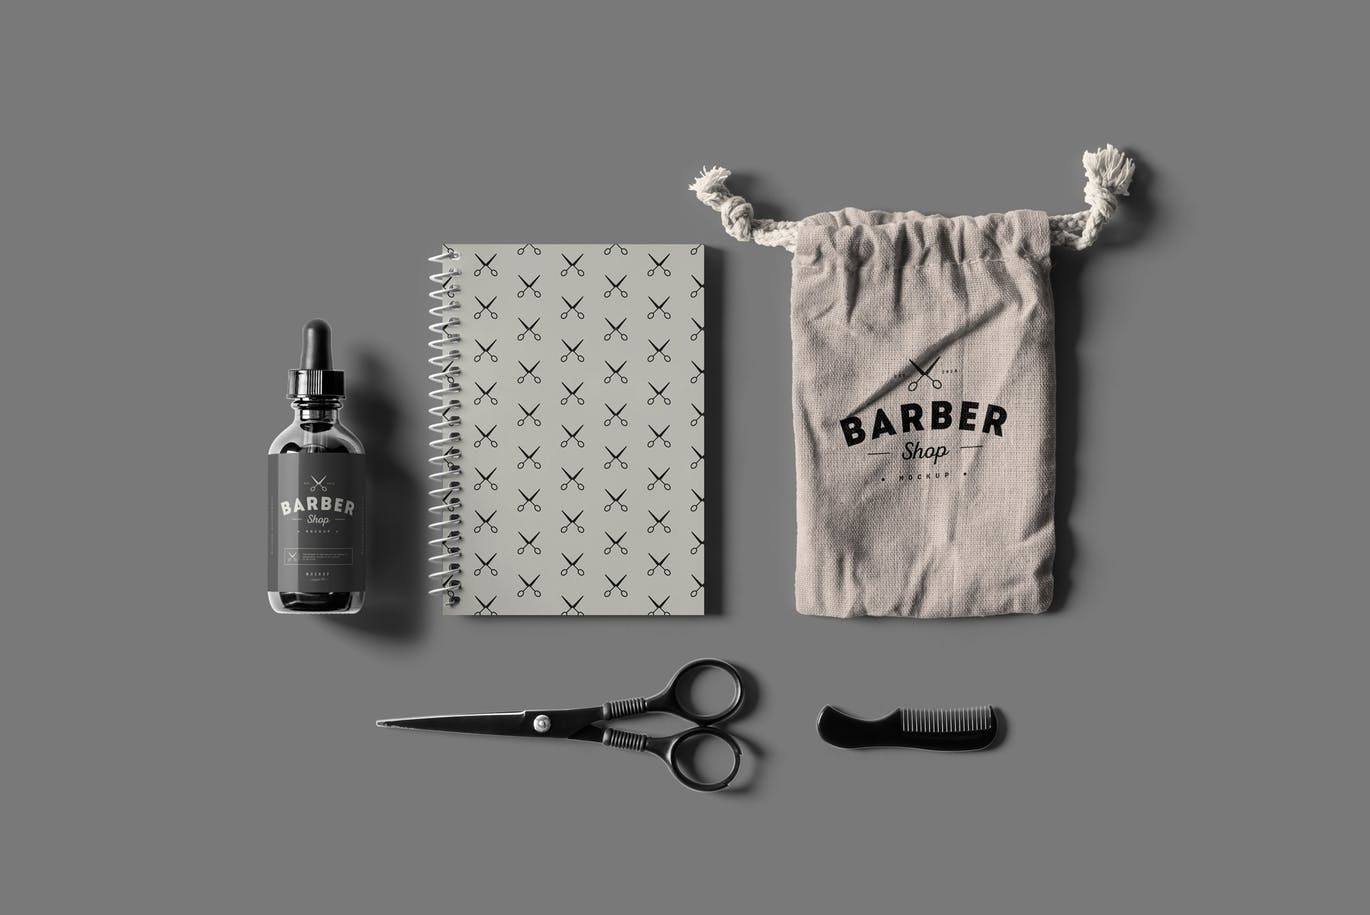 美容美发品牌样机VI展示名片展示Barber Shop Branding Mock-up